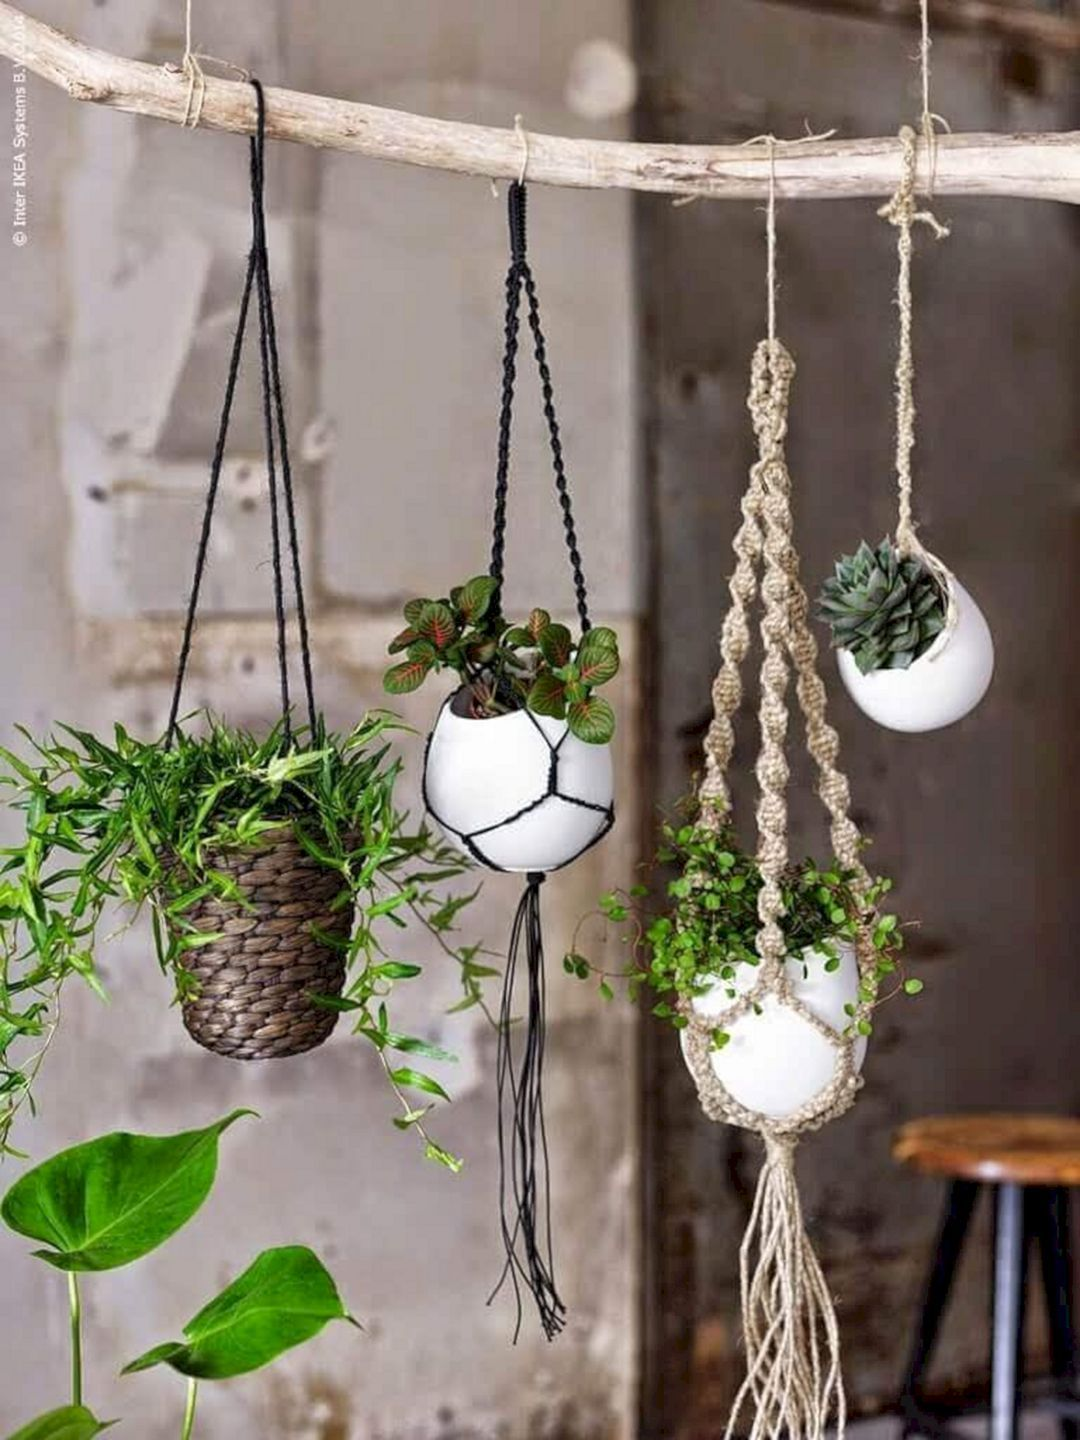 12 Beautiful Hanging Basket Plants For Home Decoration Ideas Garden Landscaping Ideas